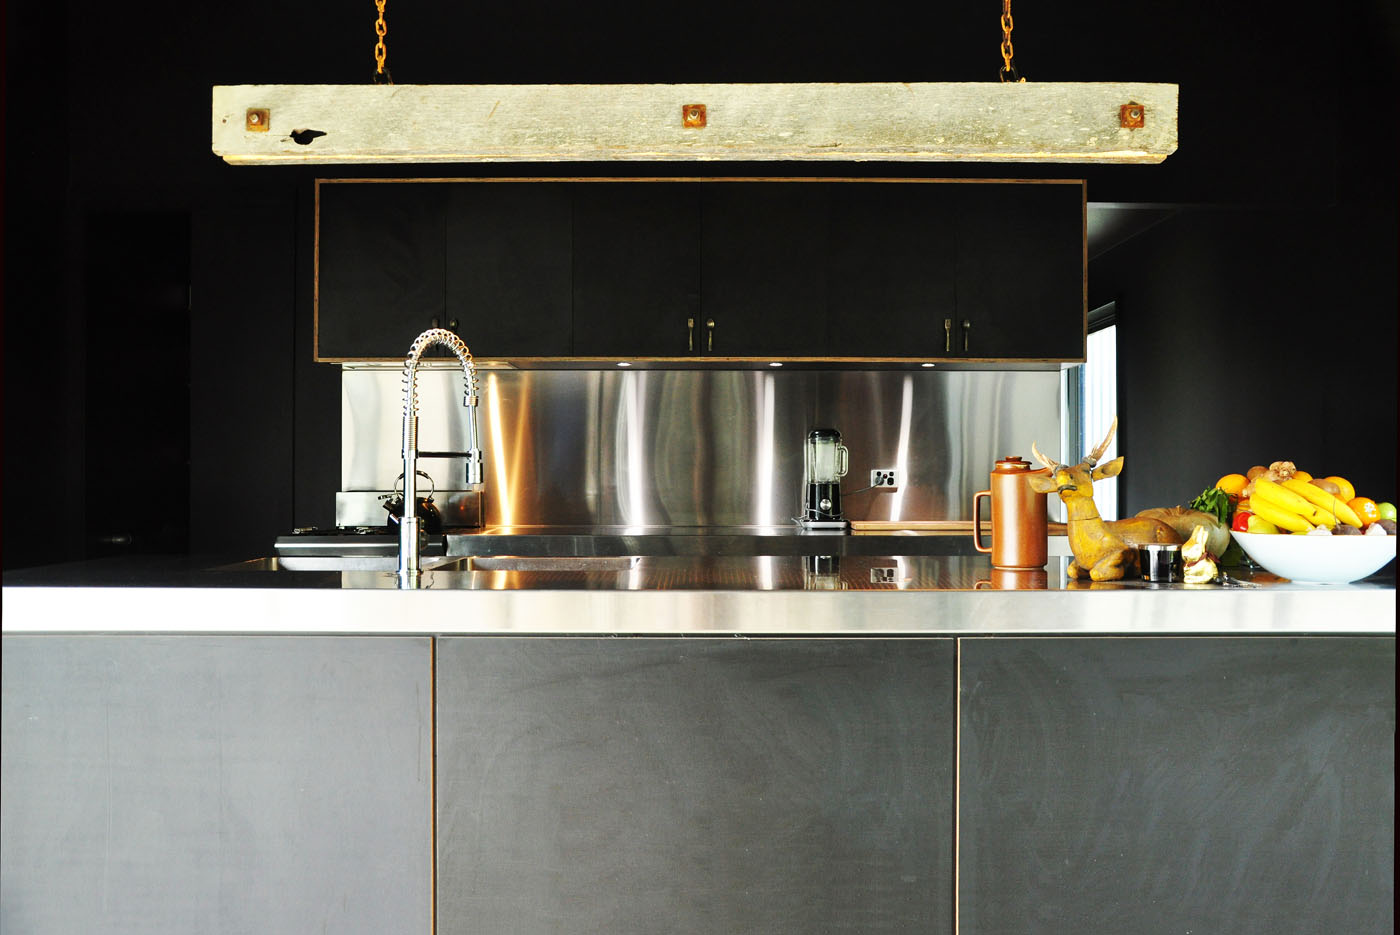 Gloucester Farmhouse by award winning residential architecture firm Sam Crawford Architects. Detail of industrial kitchen with stainless steel benchtop, black painted plywood and raw timber suspended light